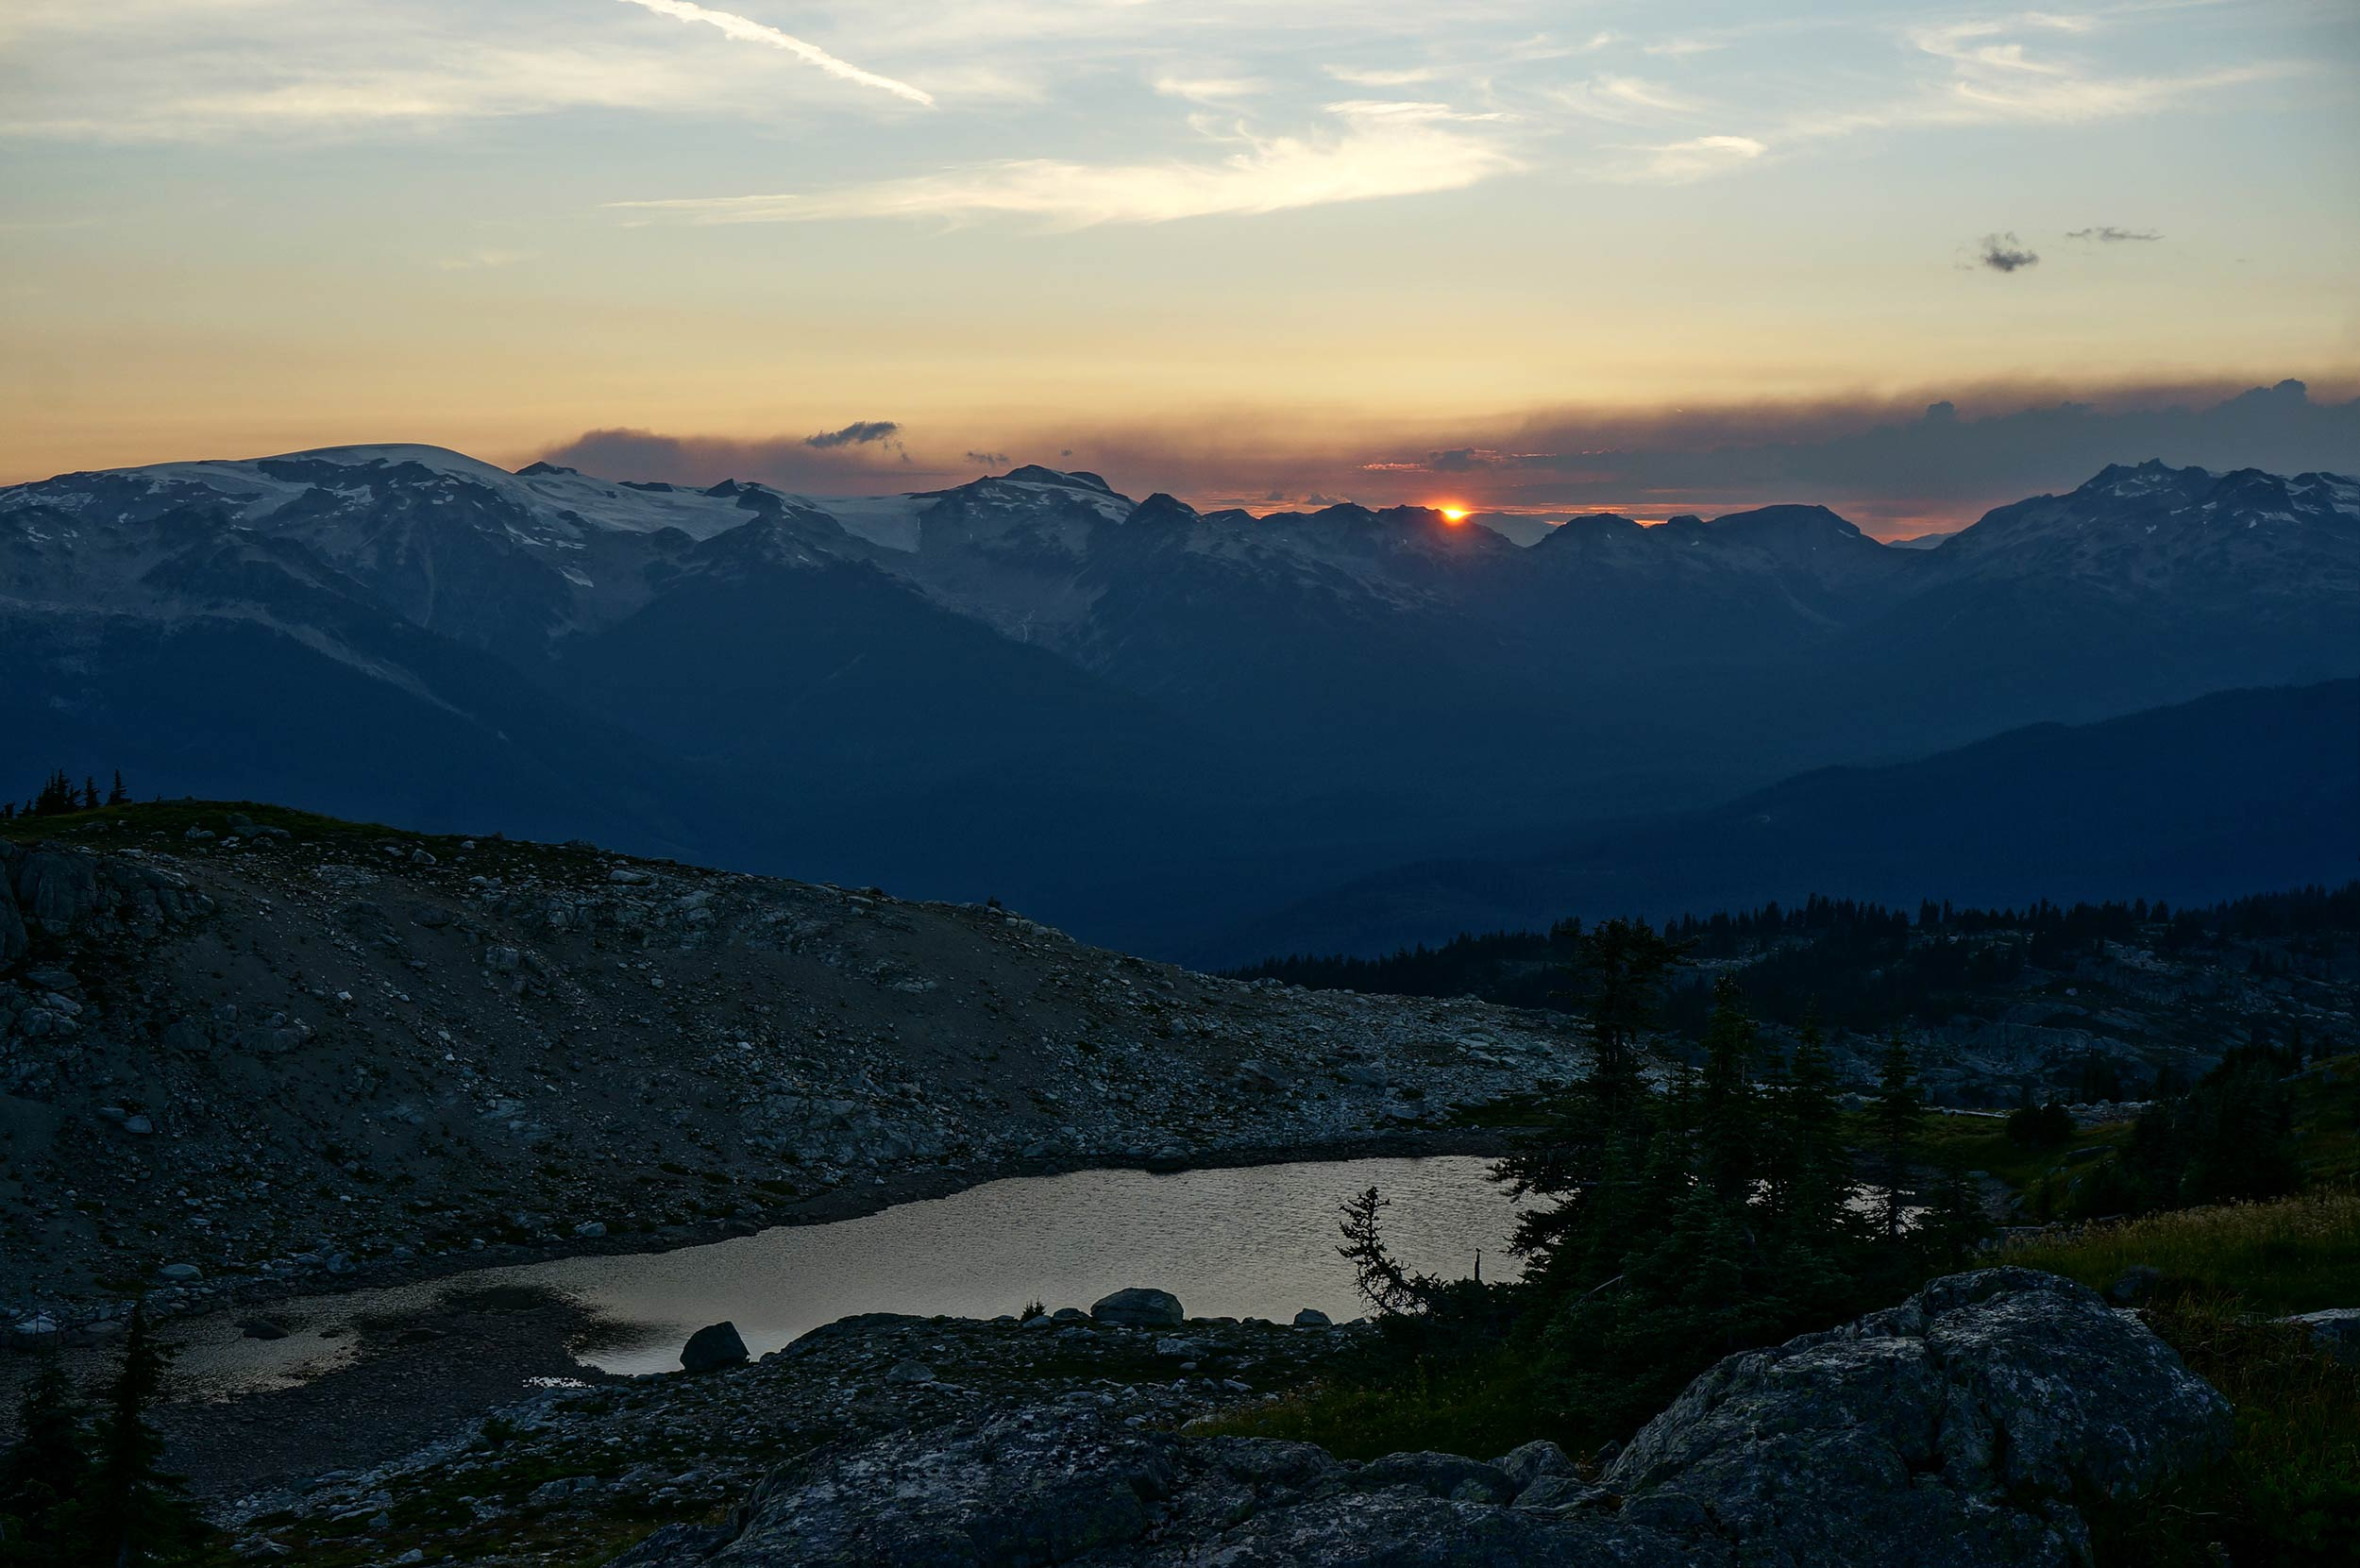 sproatt_alpine_trail_sunset_mountains.jpg